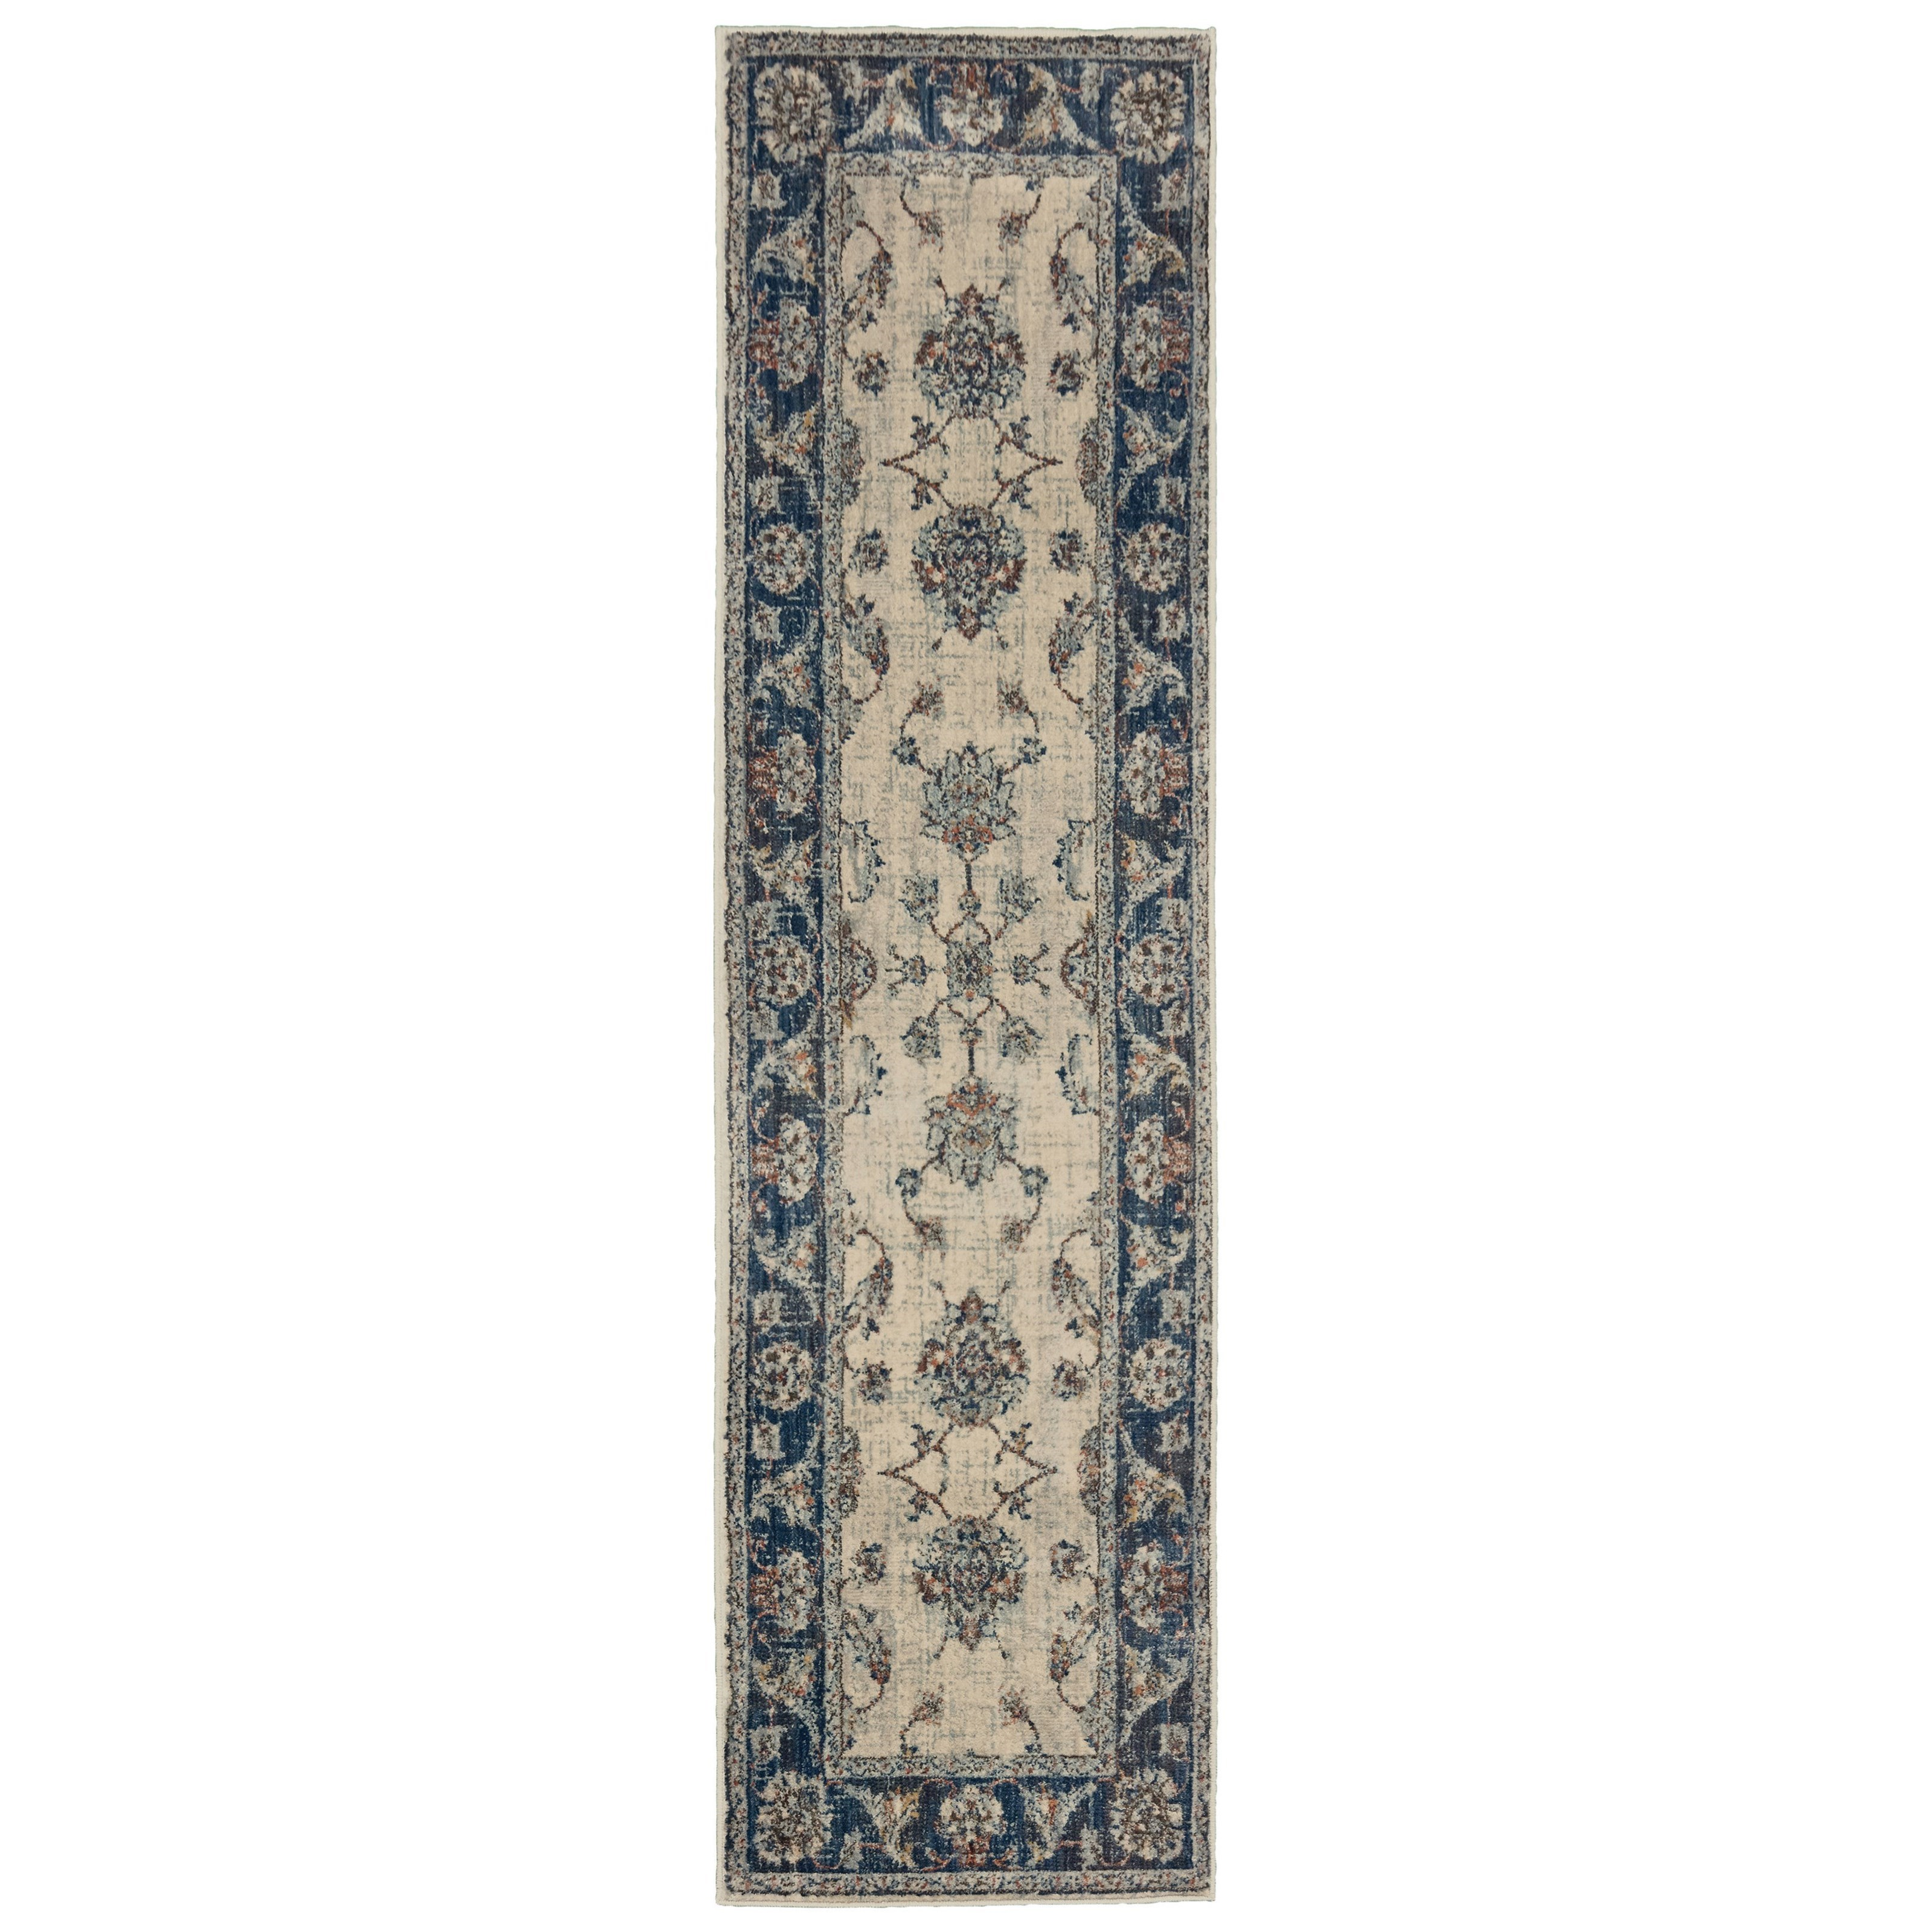 "Pandora 2' 3"" X  7' 6"" Runner Rug by Oriental Weavers at Esprit Decor Home Furnishings"